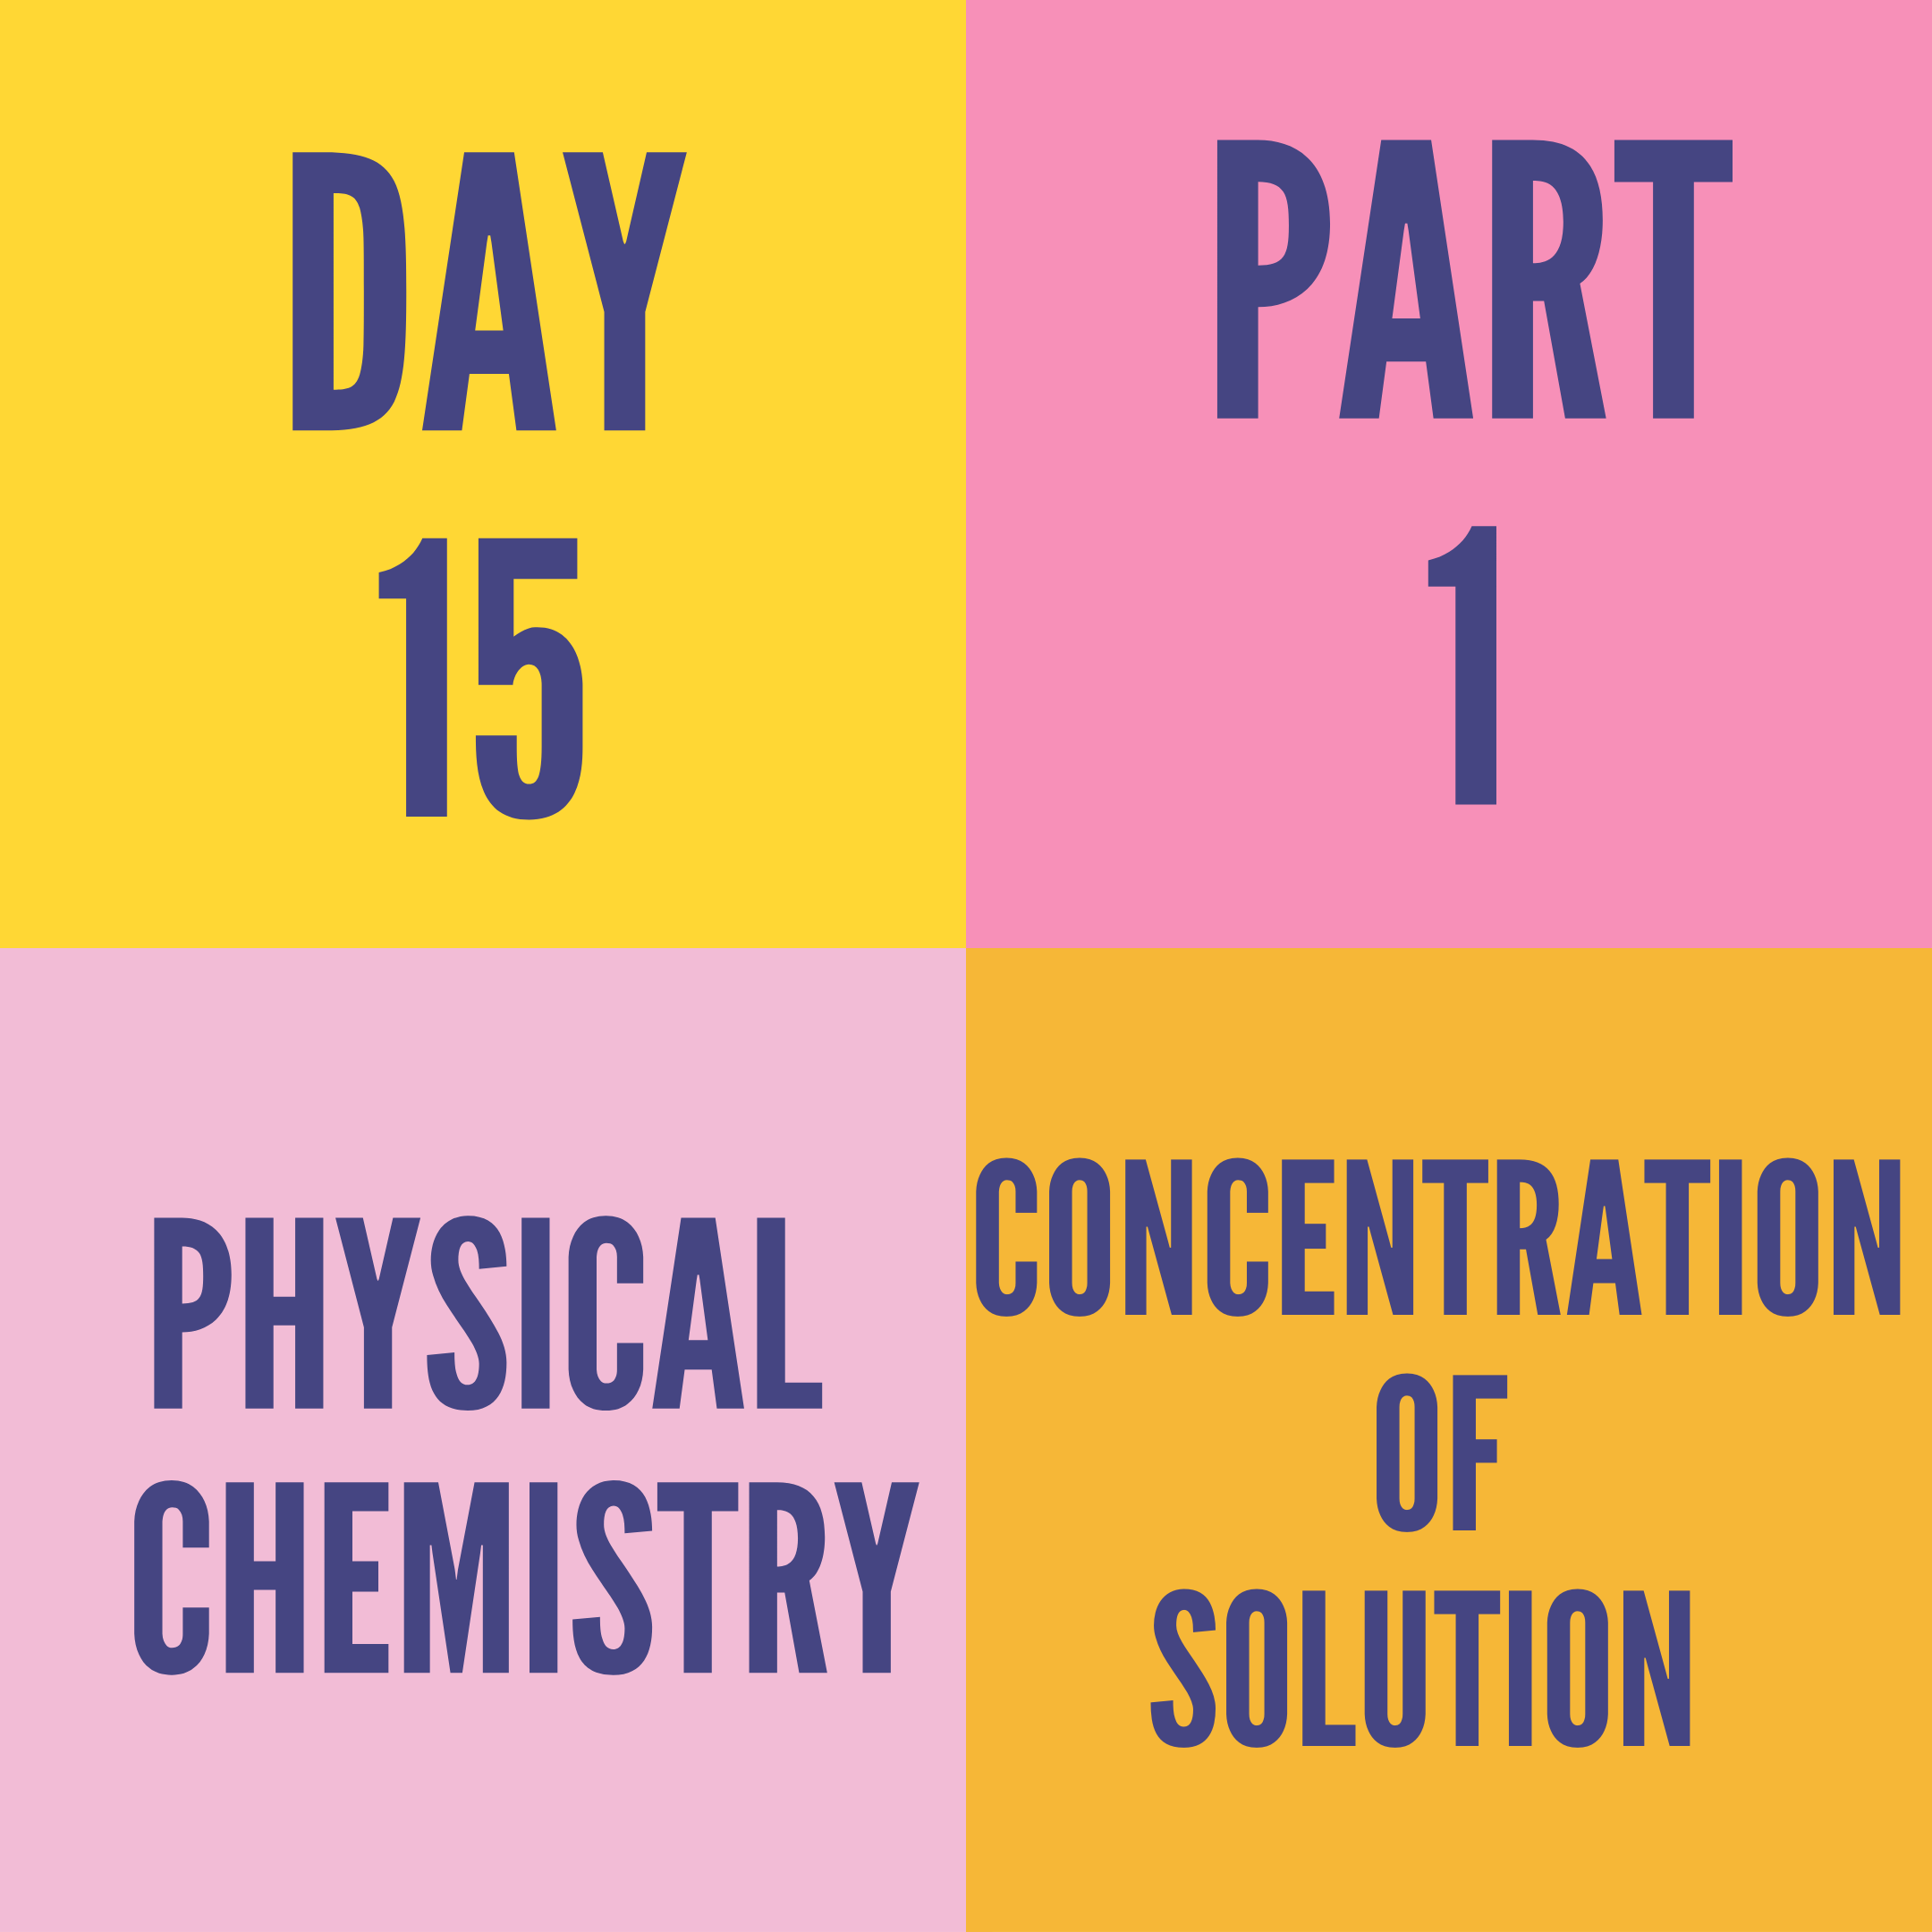 DAY-15 PART-1 CONCENTRATION OF SOLUTION